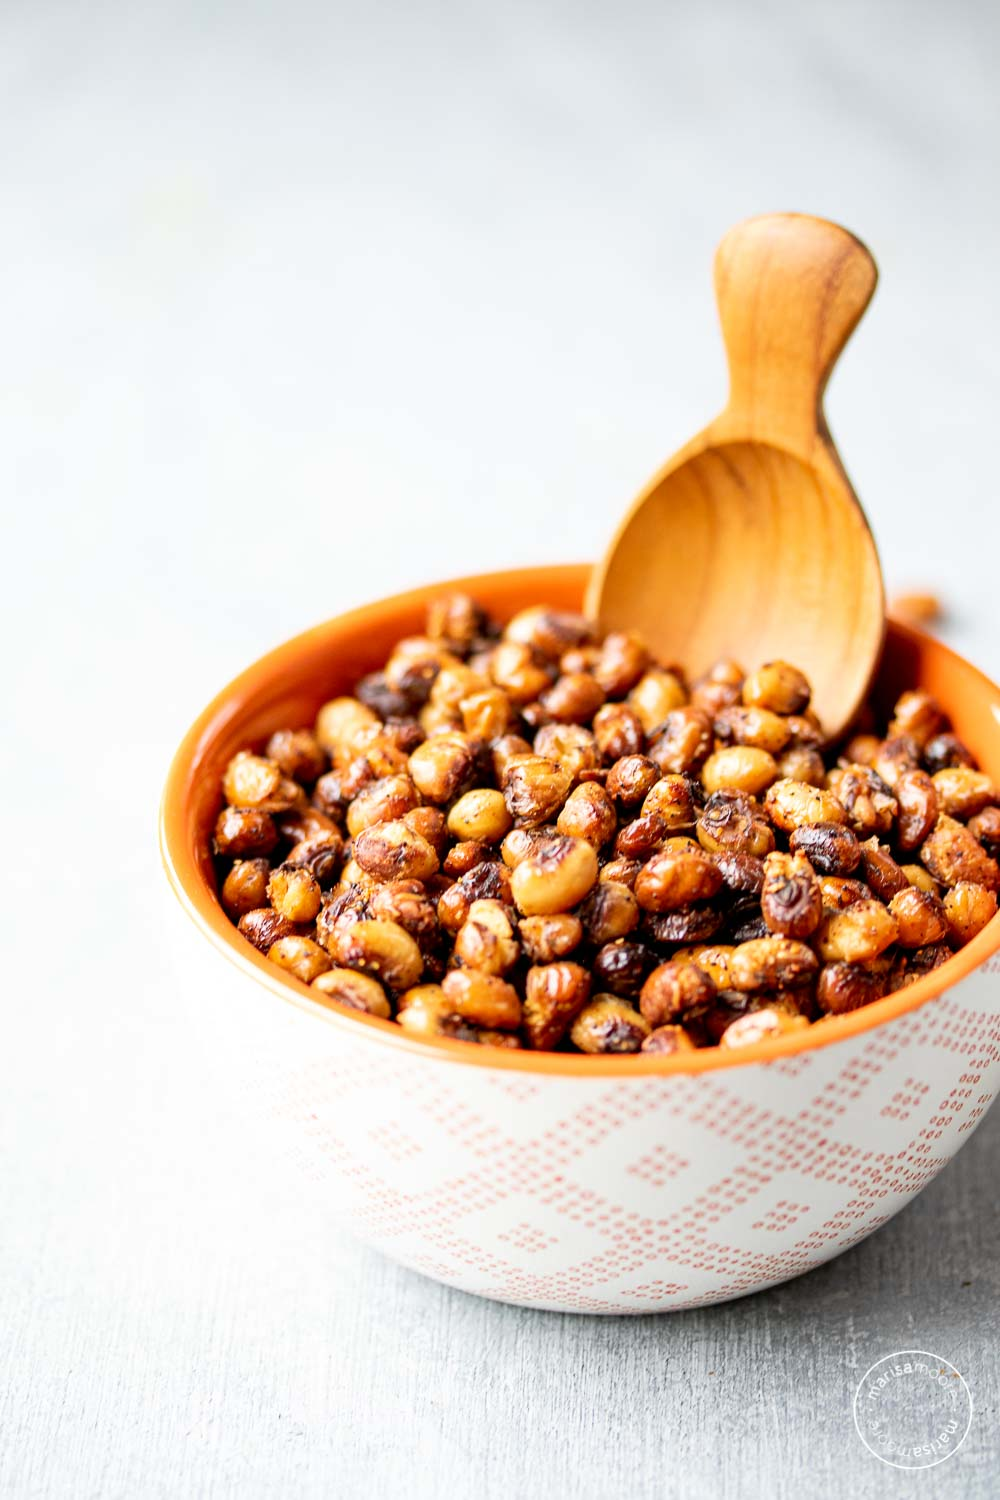 Roasted Black-Eyed Peas in a small bowl with a scoop